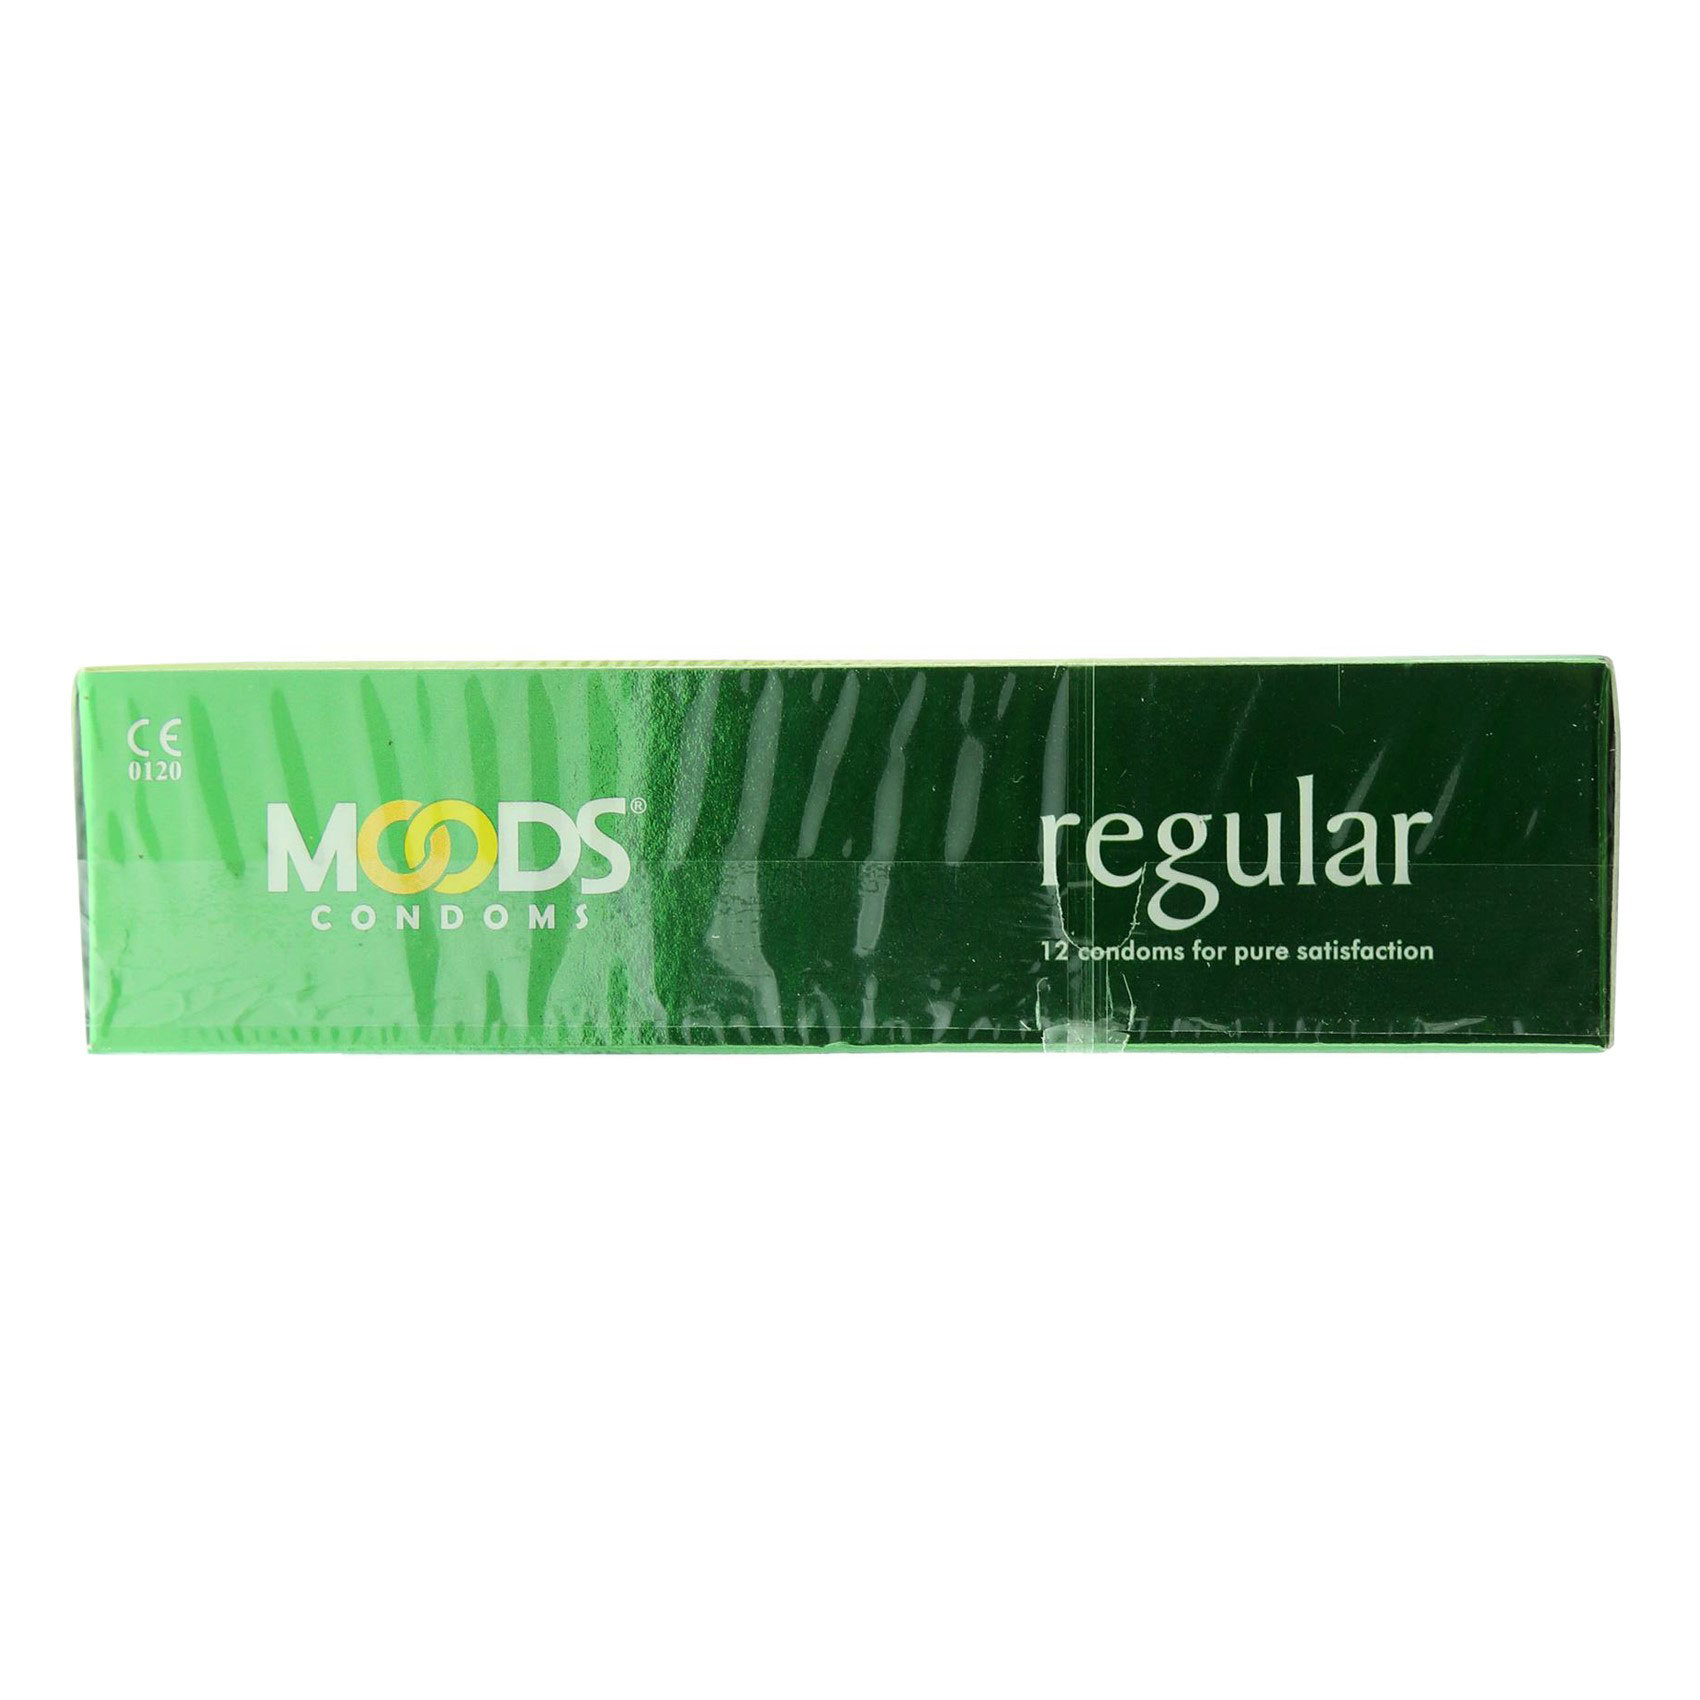 MOODS CONDOMS REGULAR 12S